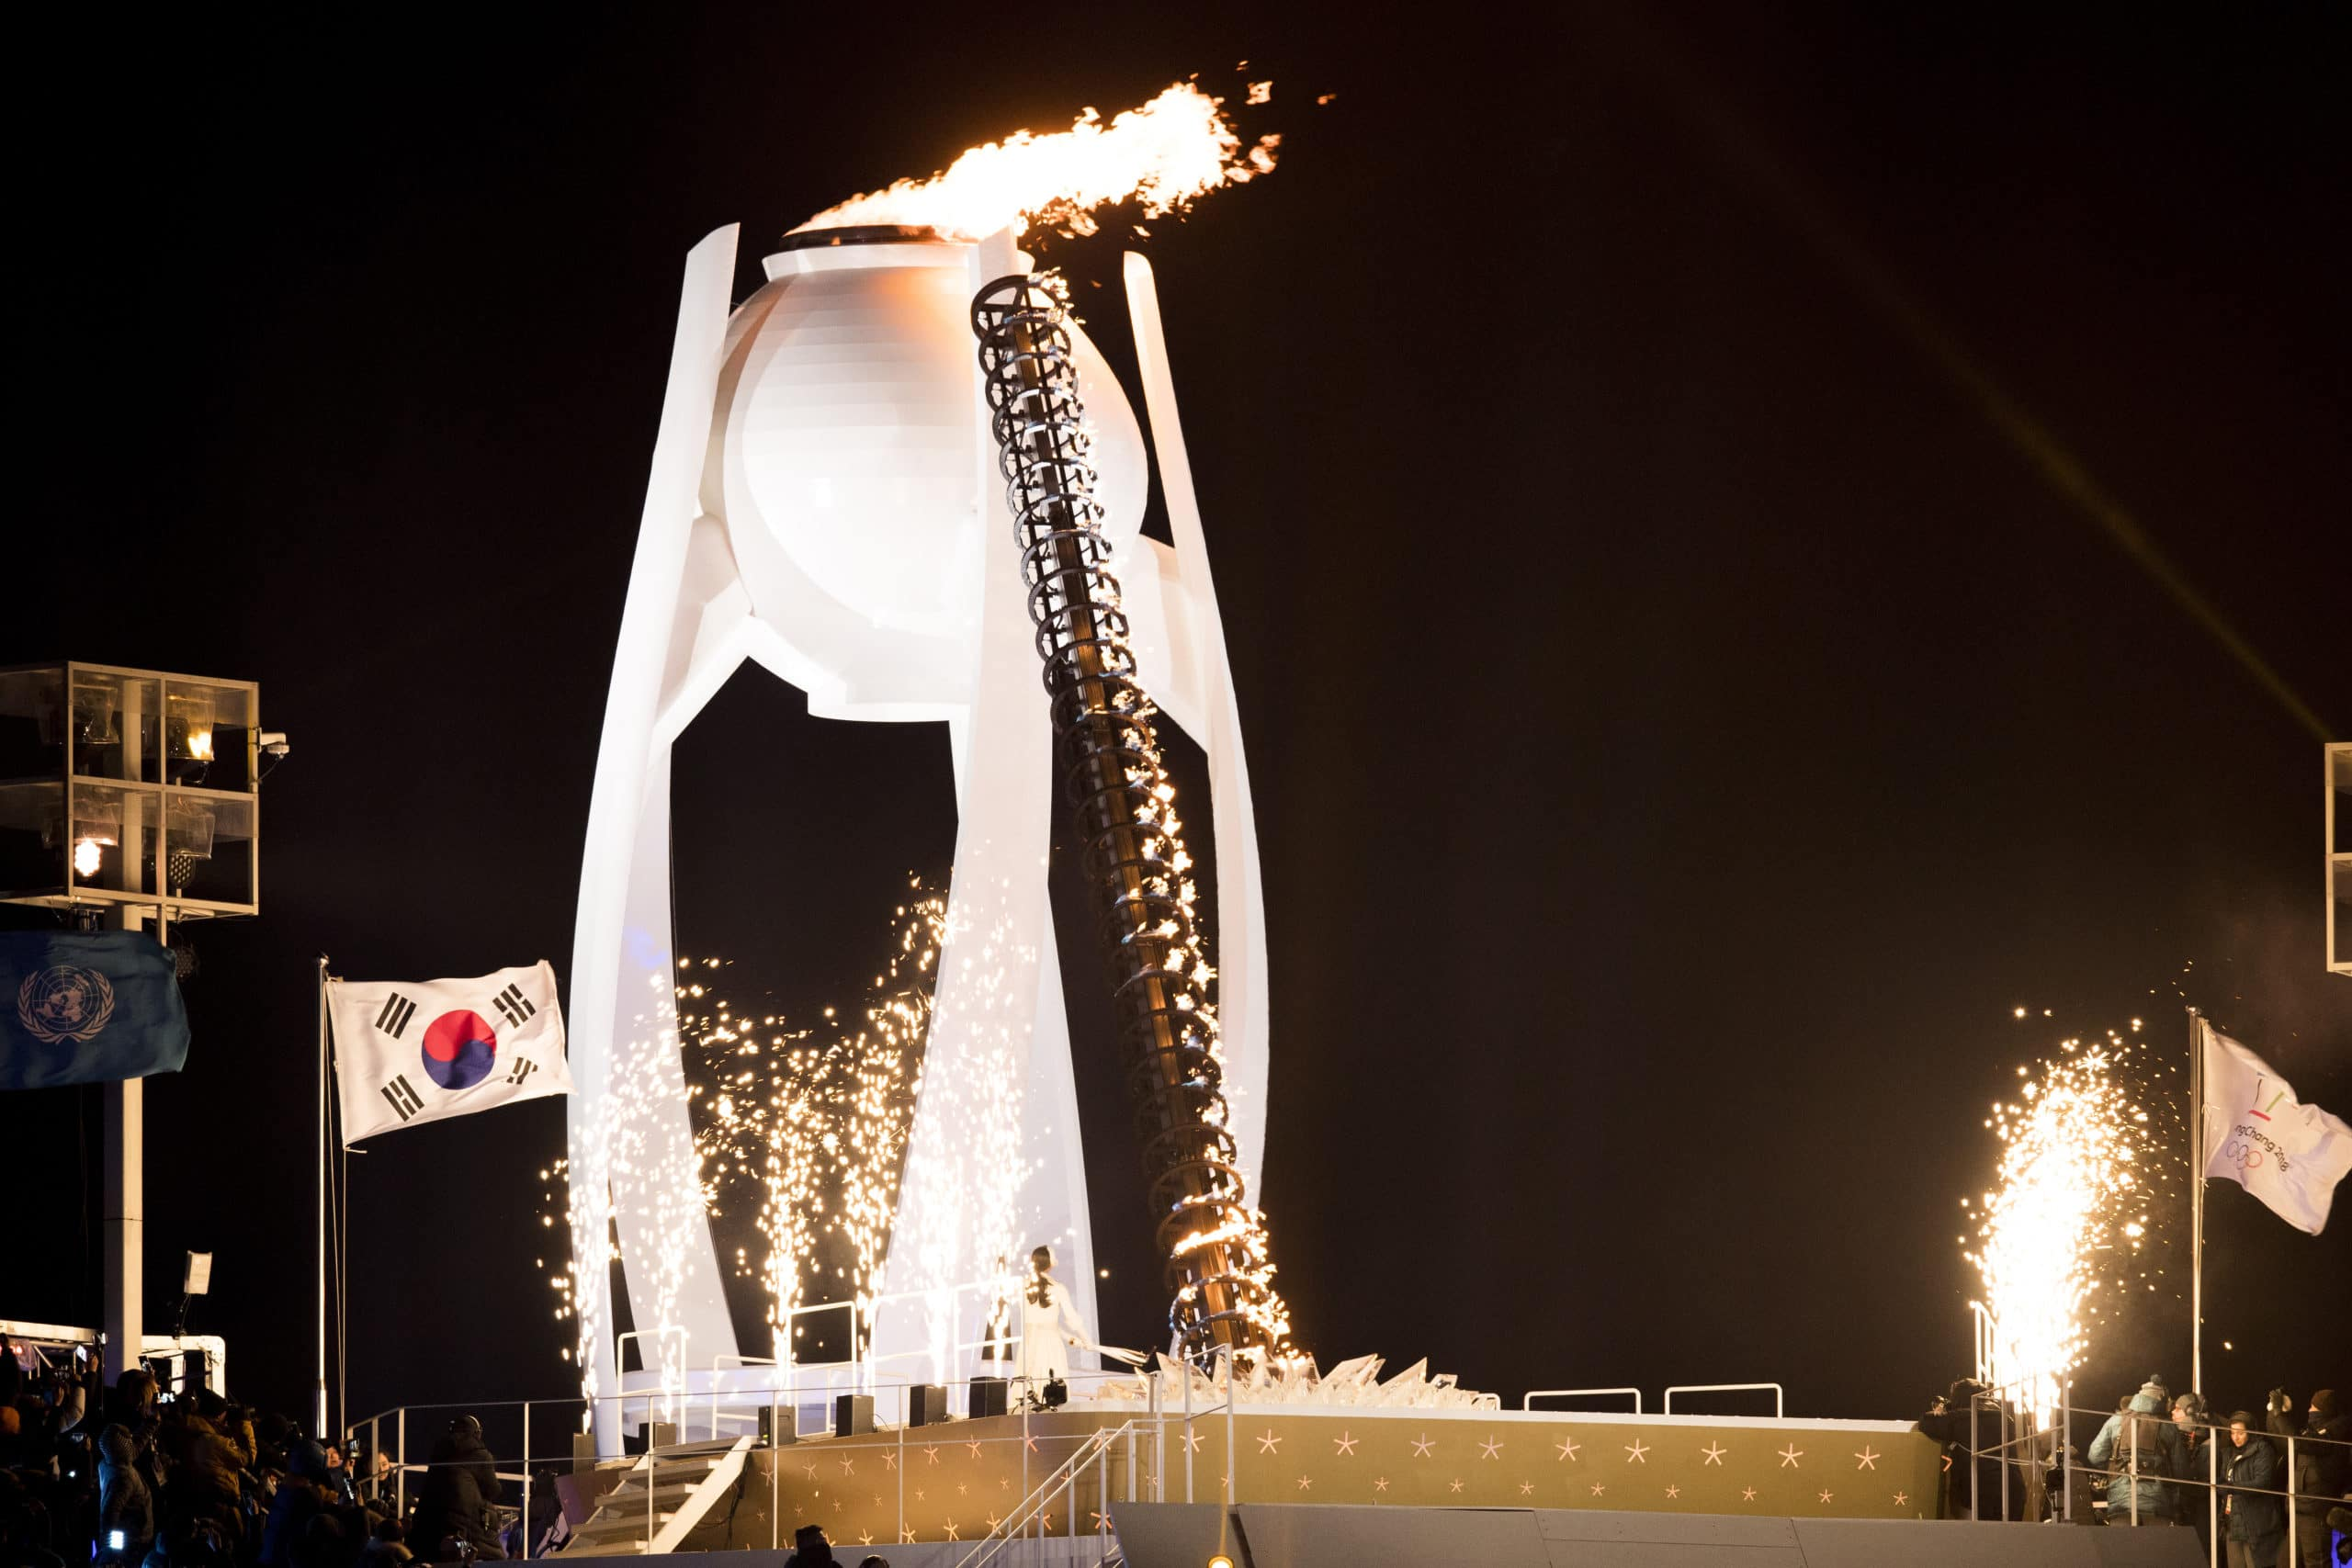 flamme olympique, vasque olympique, PyeongChang 2018, Jeux olympiques, Nordic Mag, nordicmag